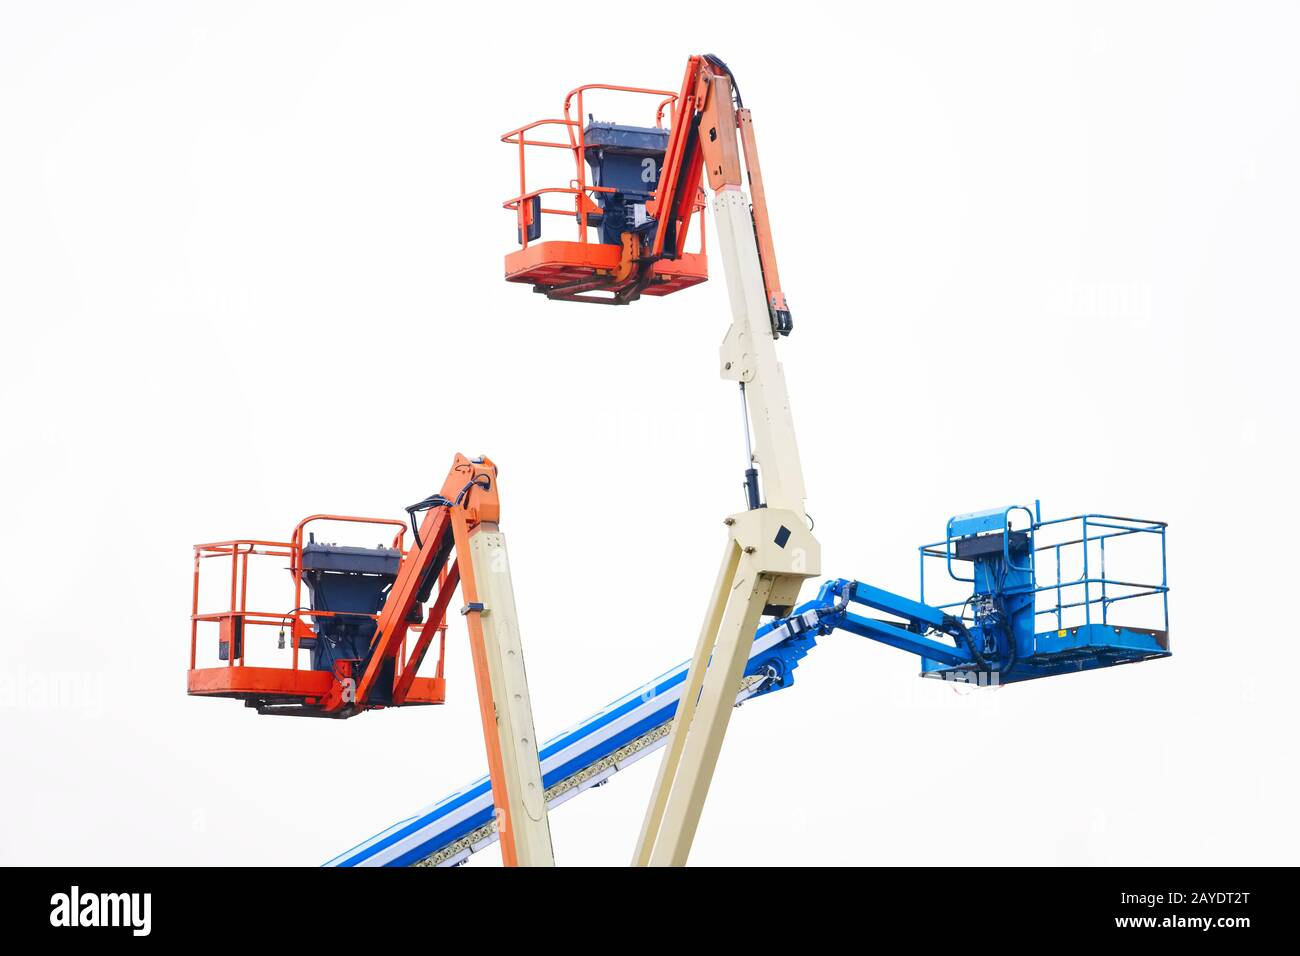 Access platform equipment powered high in sky in blue orange and yellow for high working platform height safety at construction building site Stock Photo